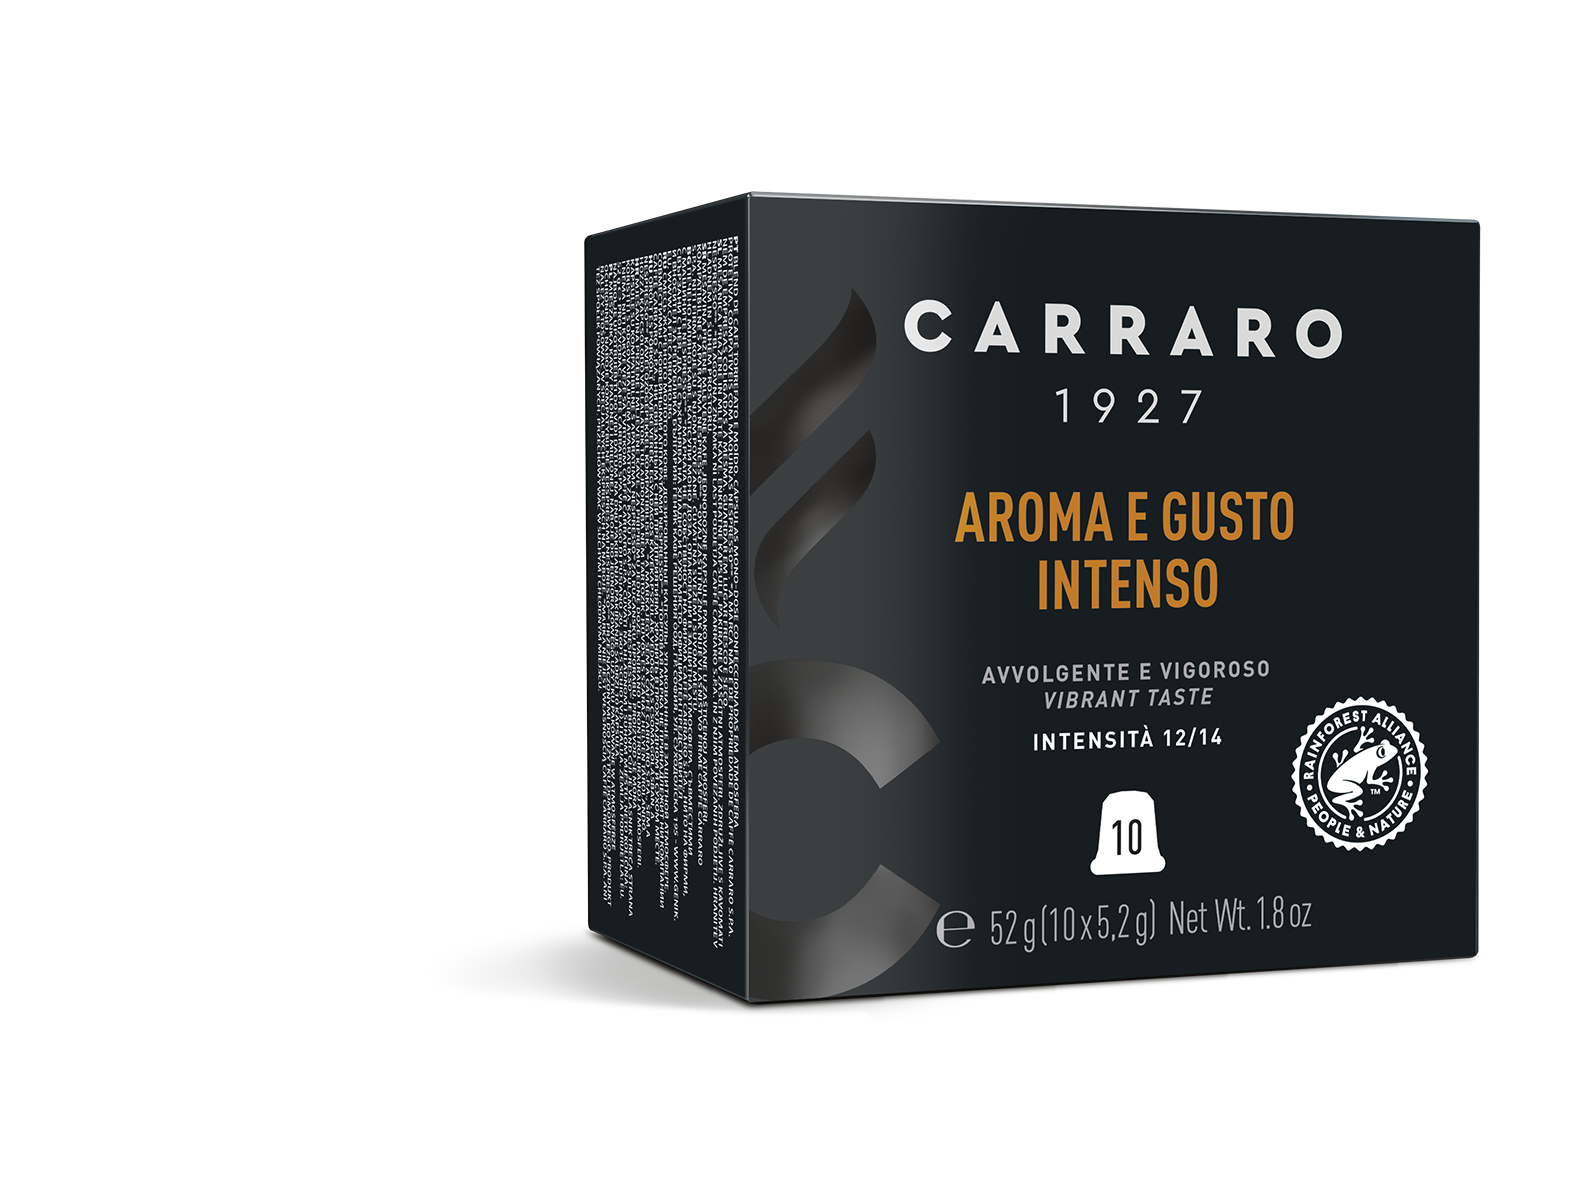 Aroma e Gusto Intenso – 10 premium capsuless in cube box